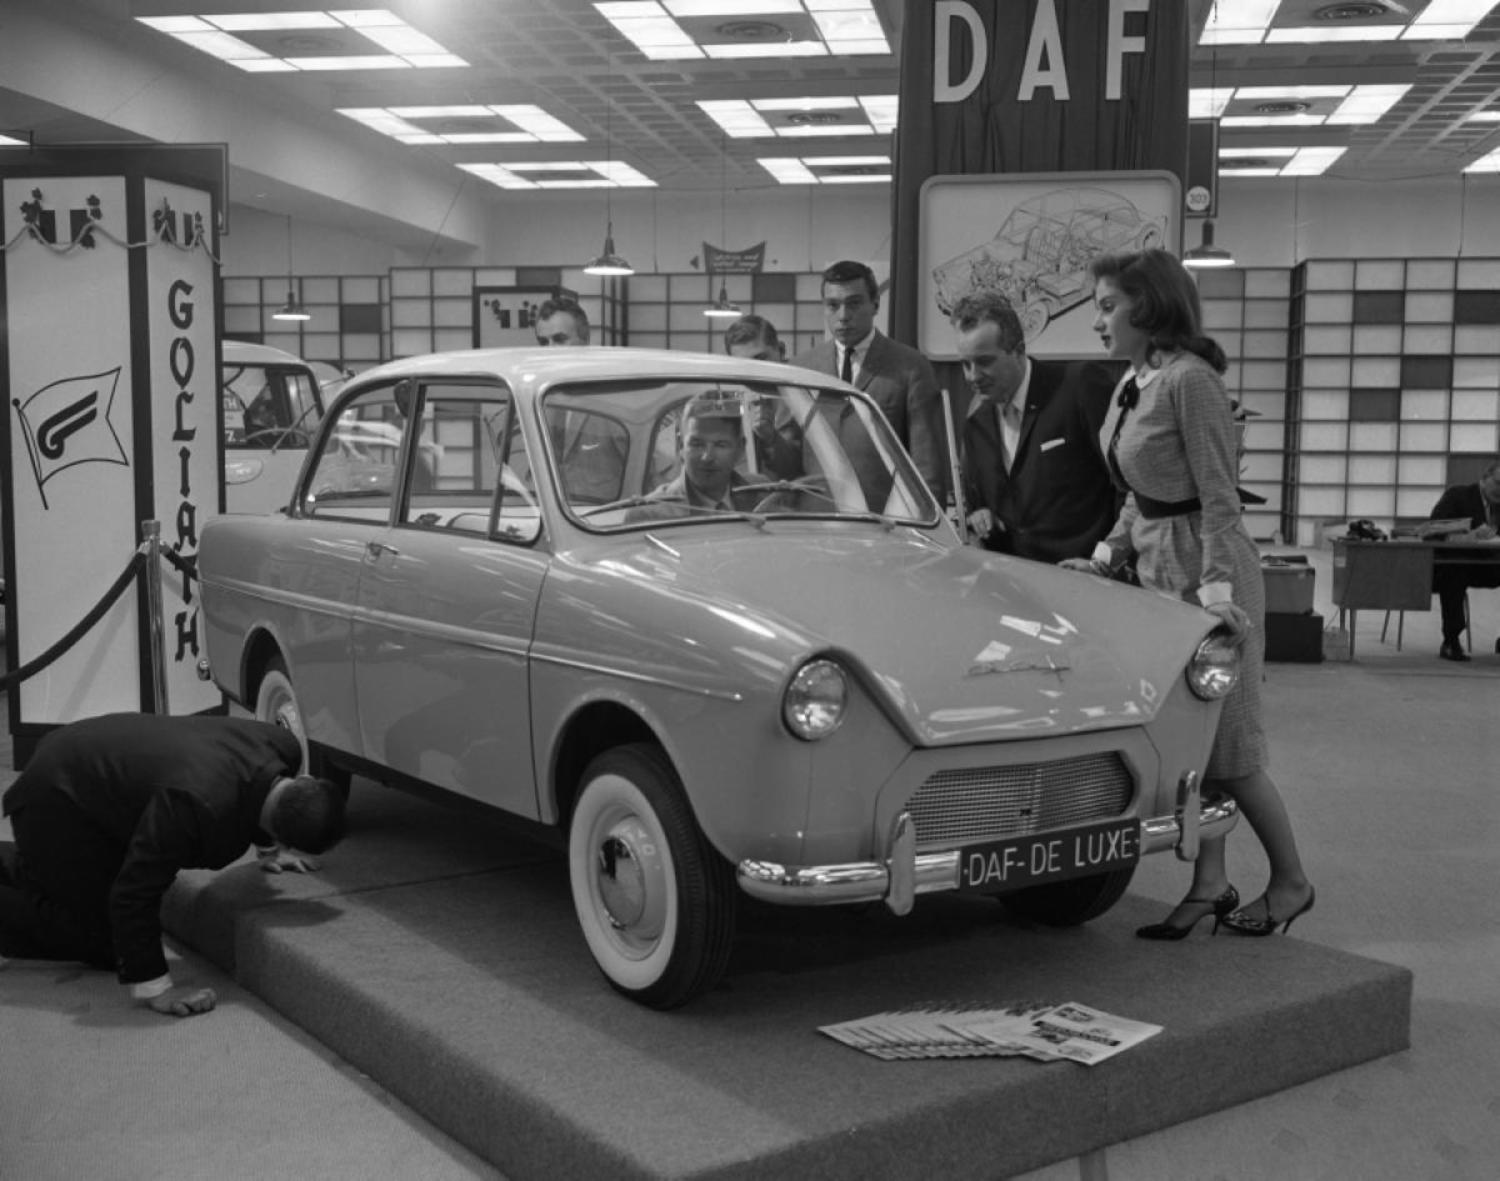 Let's go Dutch! Little-known Dutch automaker, DAF, shows off the De Luxe model at the International Auto Show.